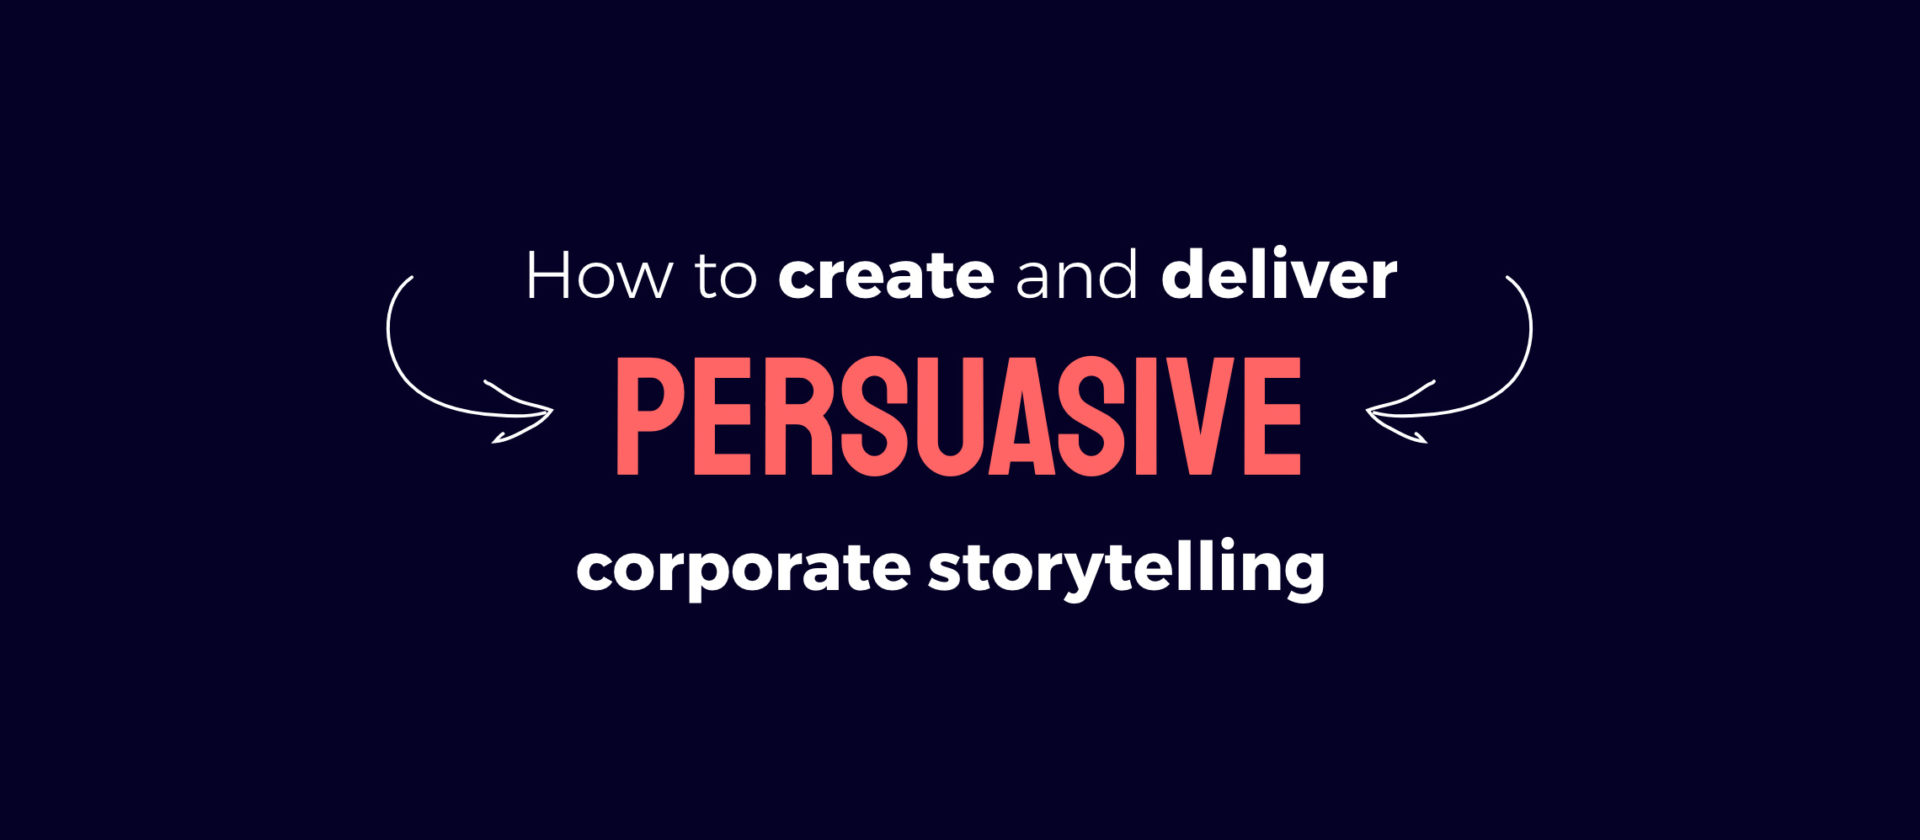 How to create and deliver persuasive corporate storytelling